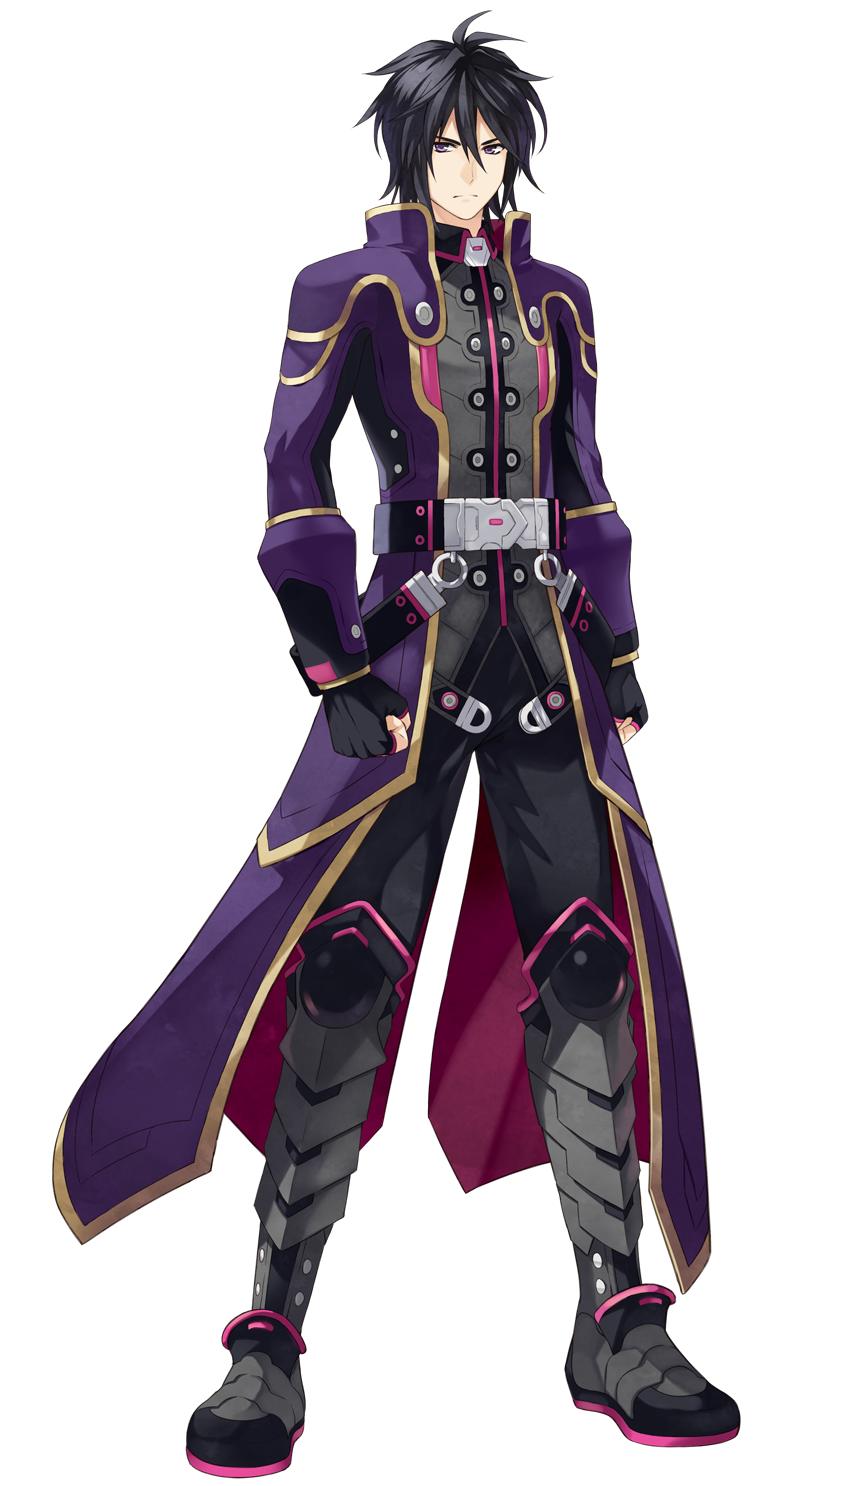 X Men Anime Characters Database : Apollonius fairy fencer f wiki fandom powered by wikia